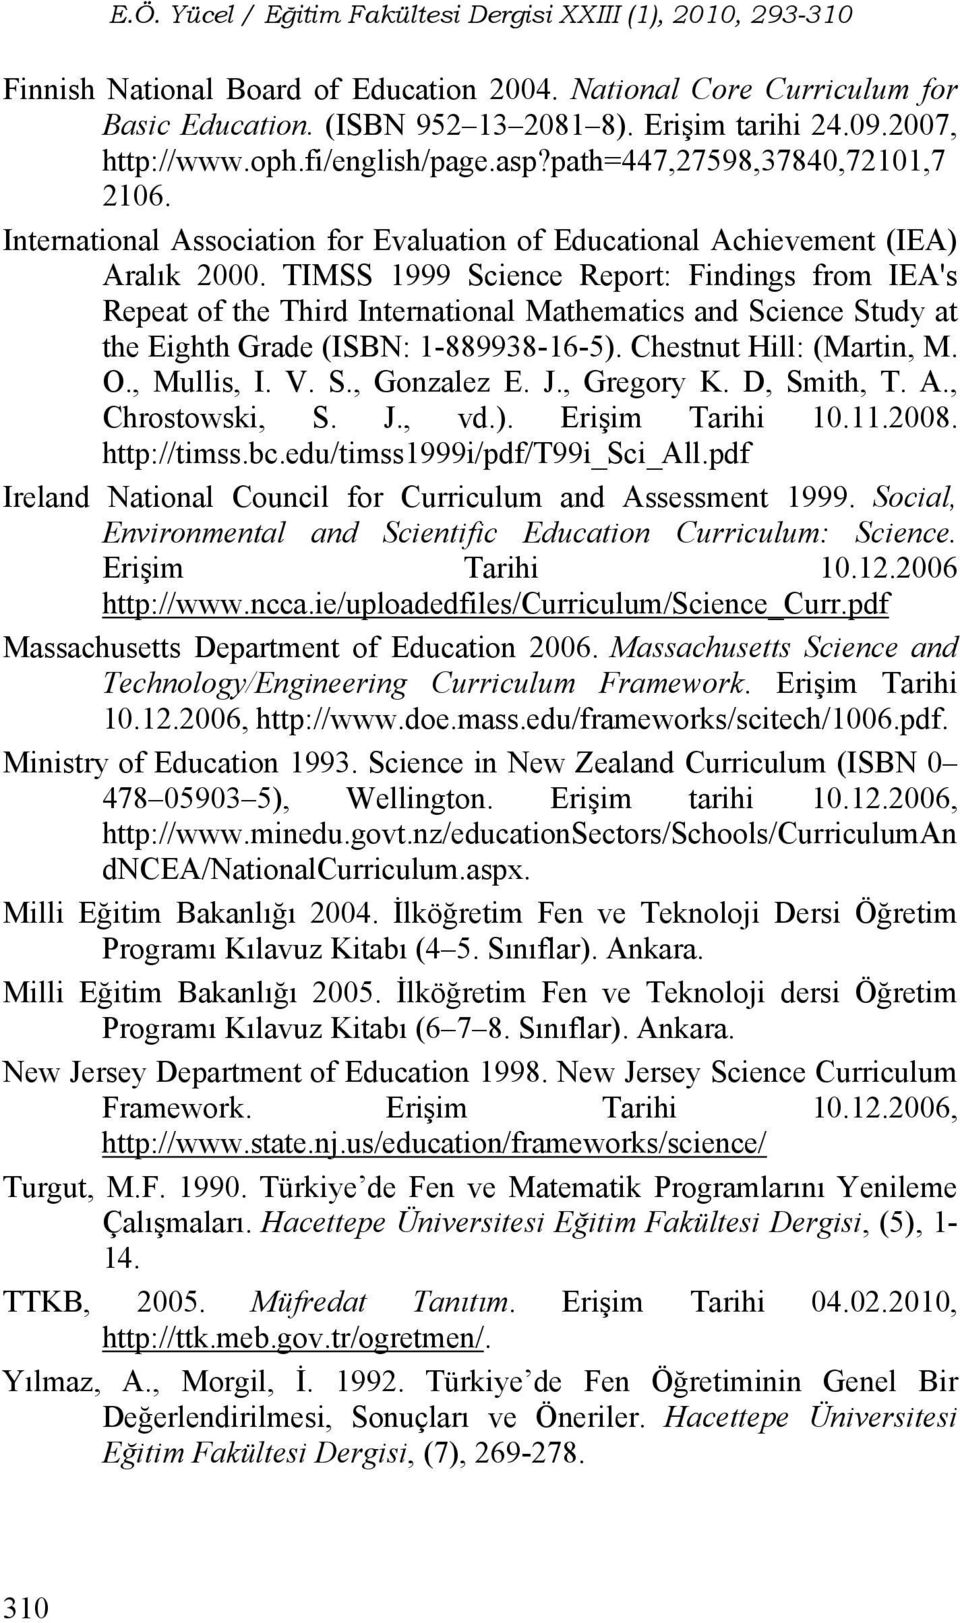 TIMSS 1999 Science Report: Findings from IEA's Repeat of the Third International Mathematics and Science Study at the Eighth Grade (ISBN: 1-889938-16-5). Chestnut Hill: (Martin, M. O., Mullis, I. V.